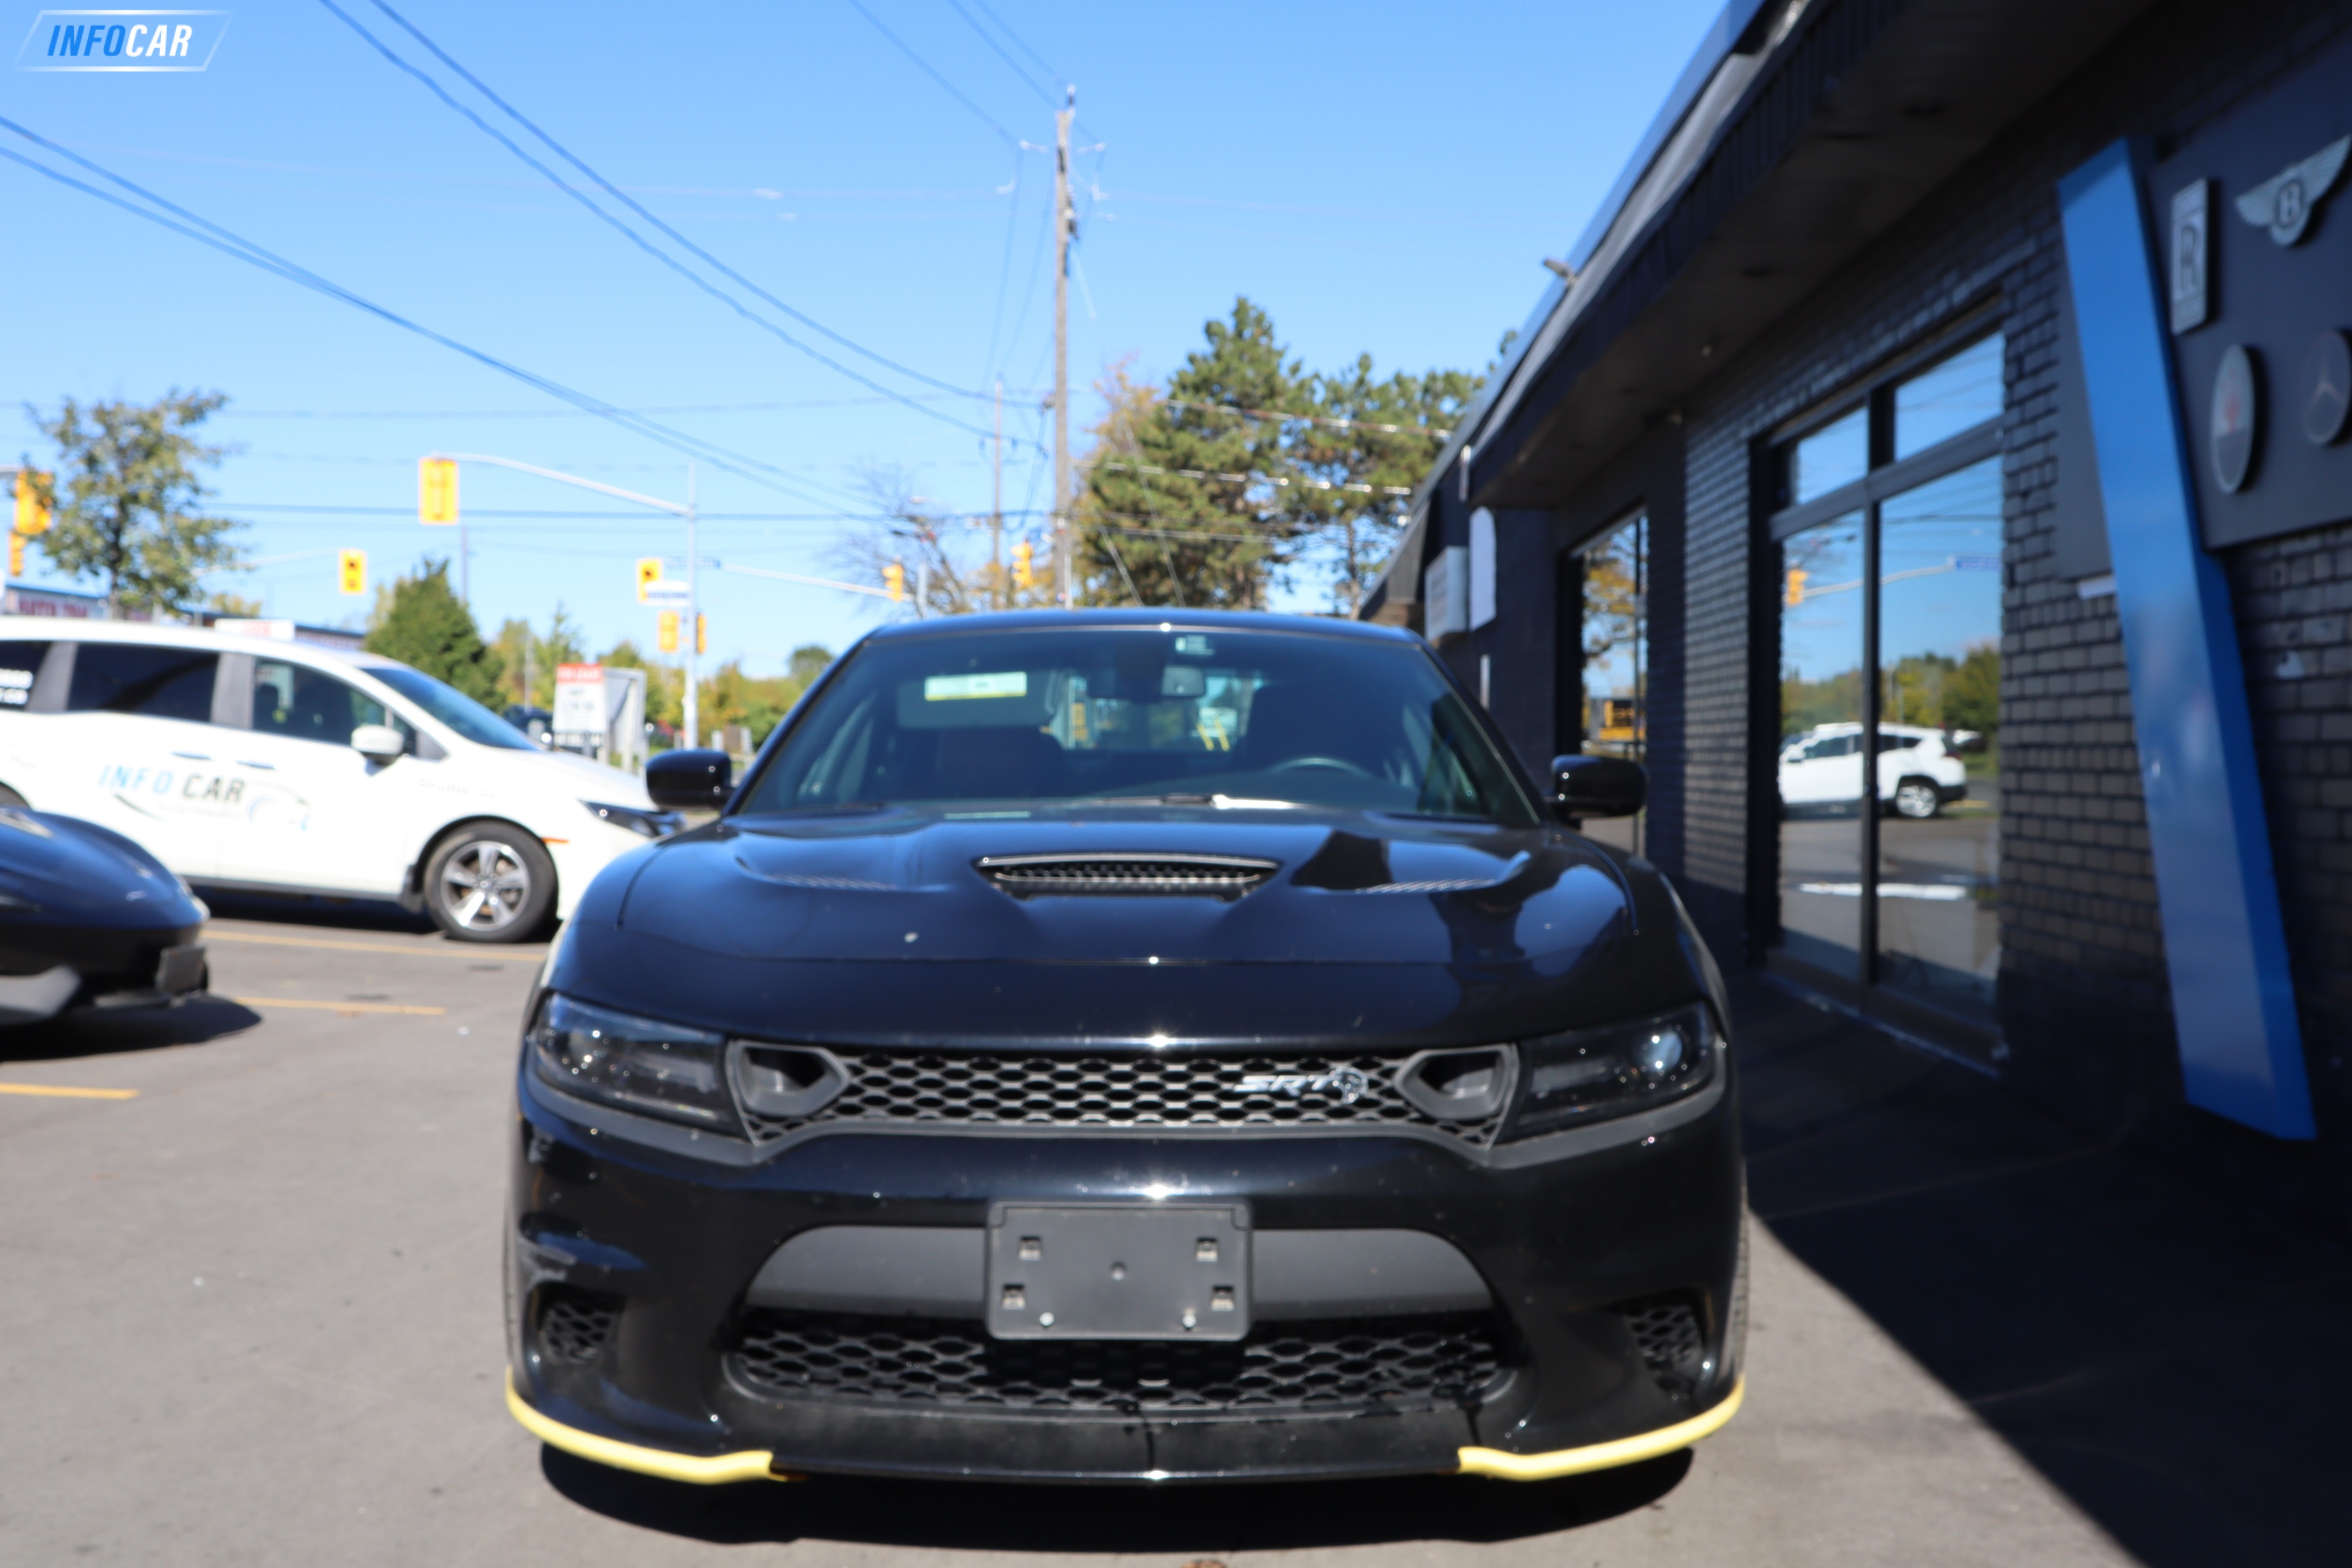 2019 Dodge Charger SRT HELLCAT - INFOCAR - Toronto's Most Comprehensive New and Used Auto Trading Platform